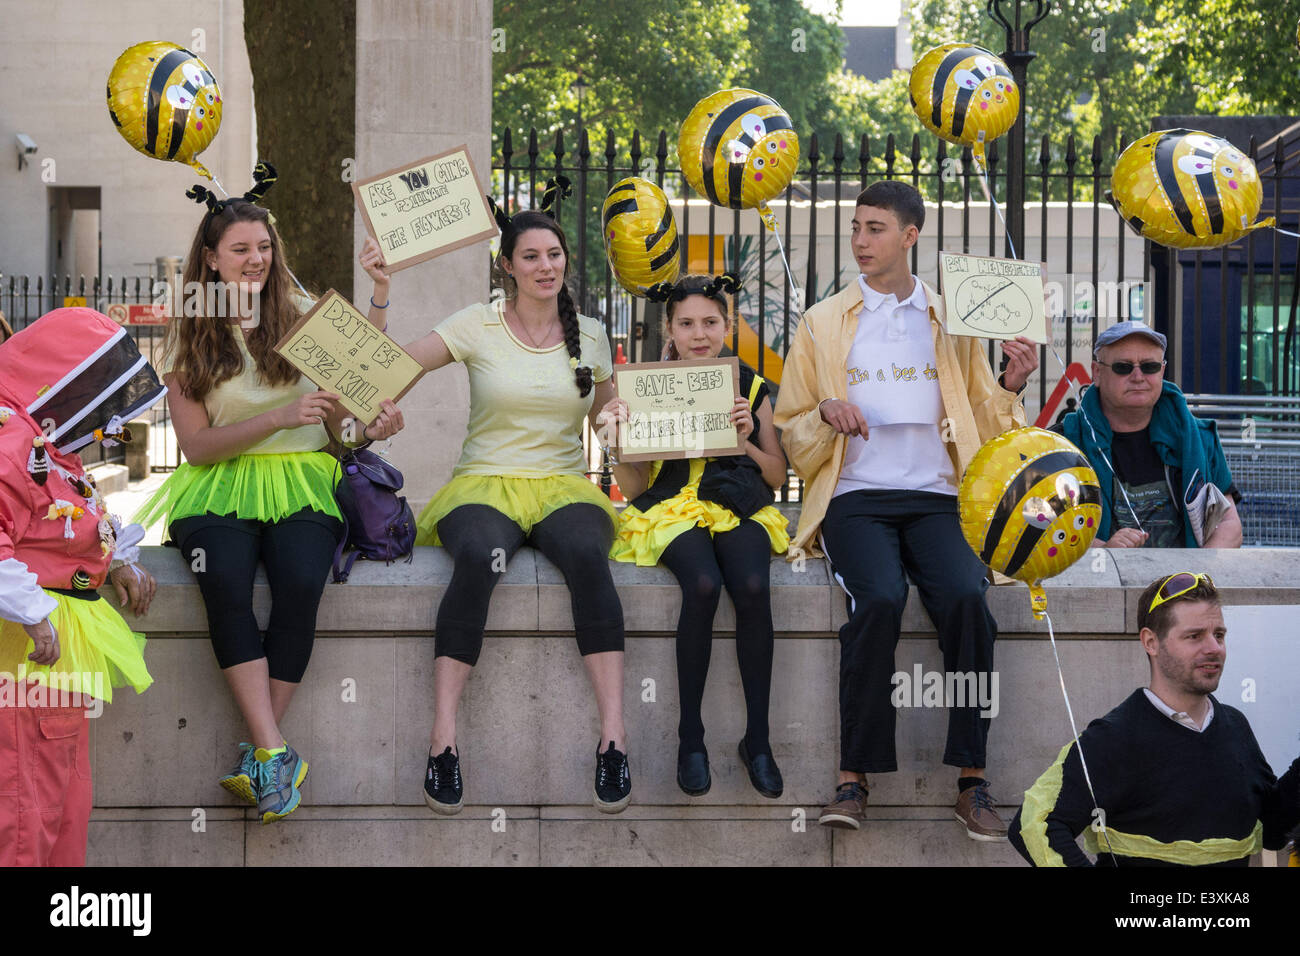 Whitehall, London, UK. 1st July 2014. Protesters in yellow and black swarm opposite the entrance to Downing Street - Stock Image